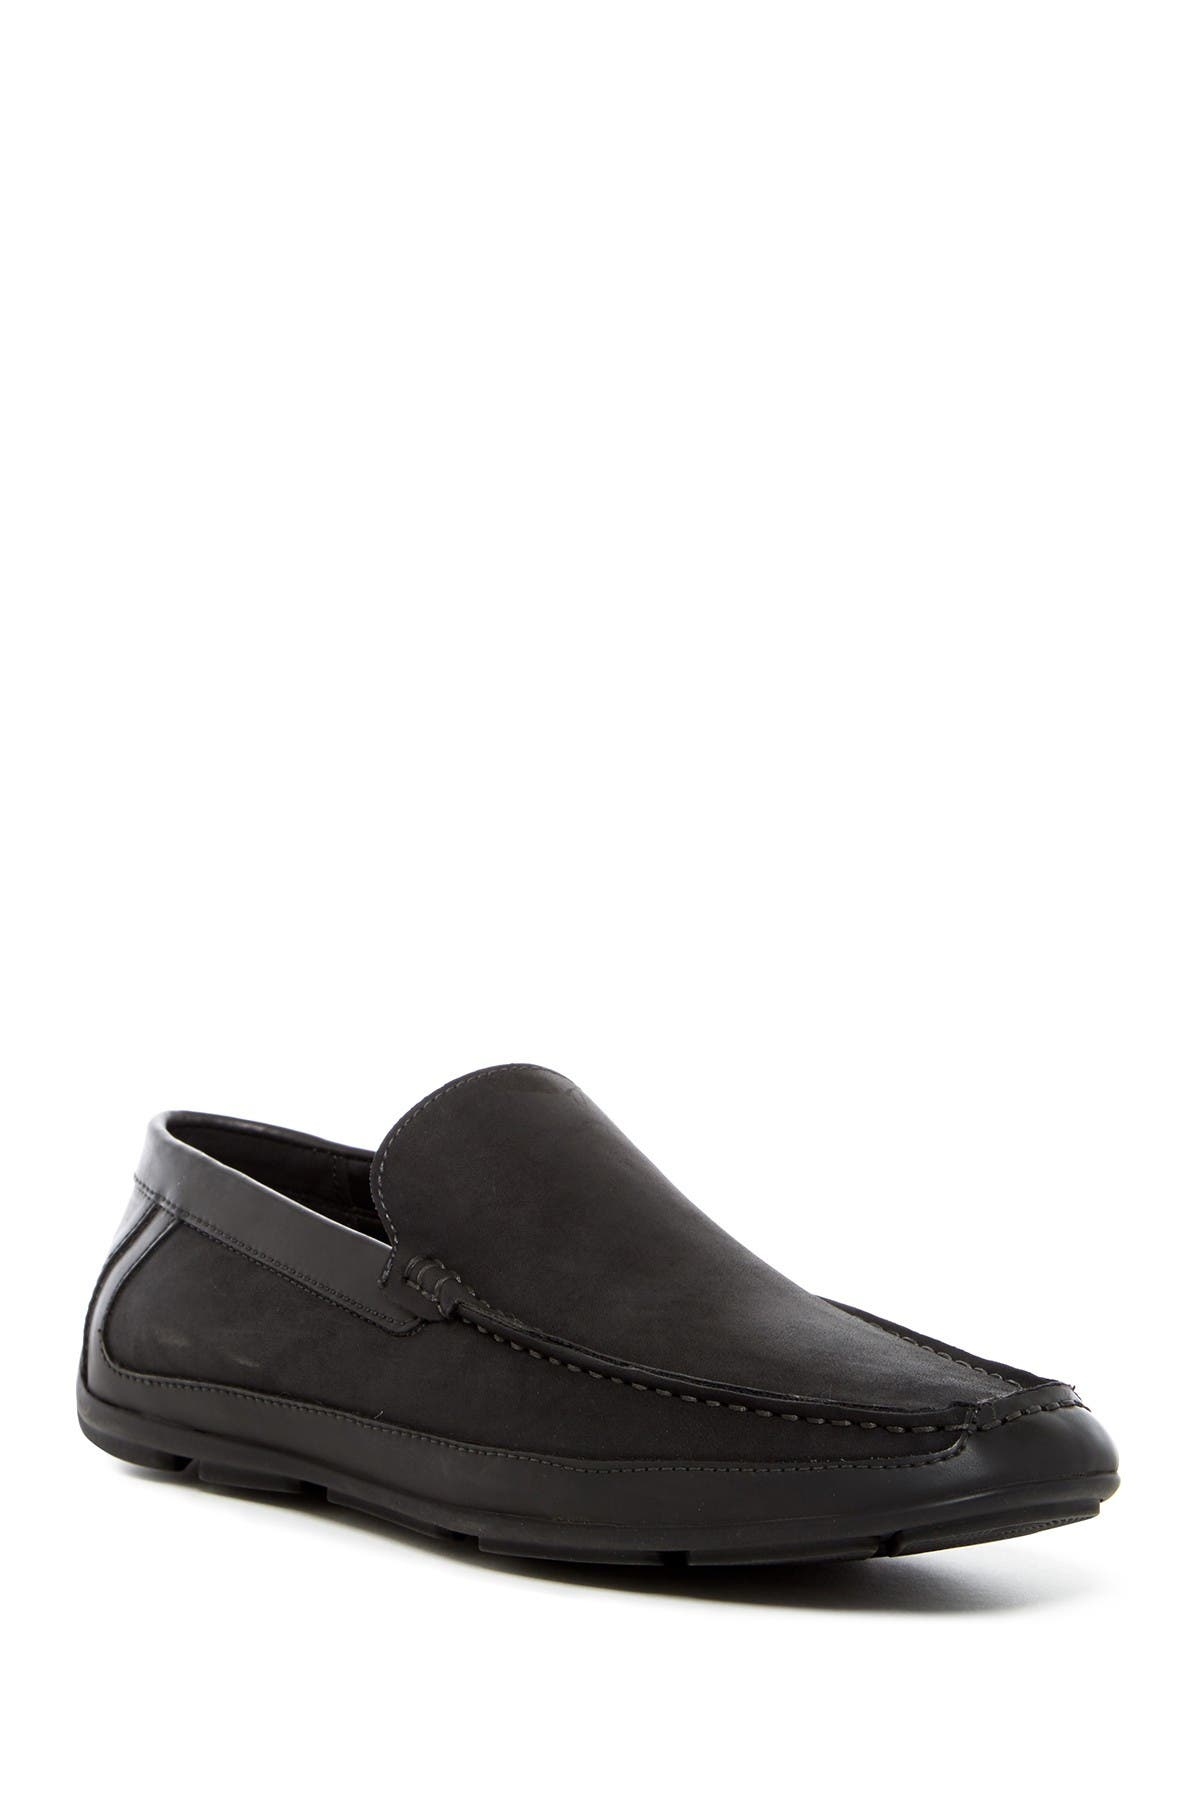 Image of Kenneth Cole Reaction Lap of Luxury Loafer